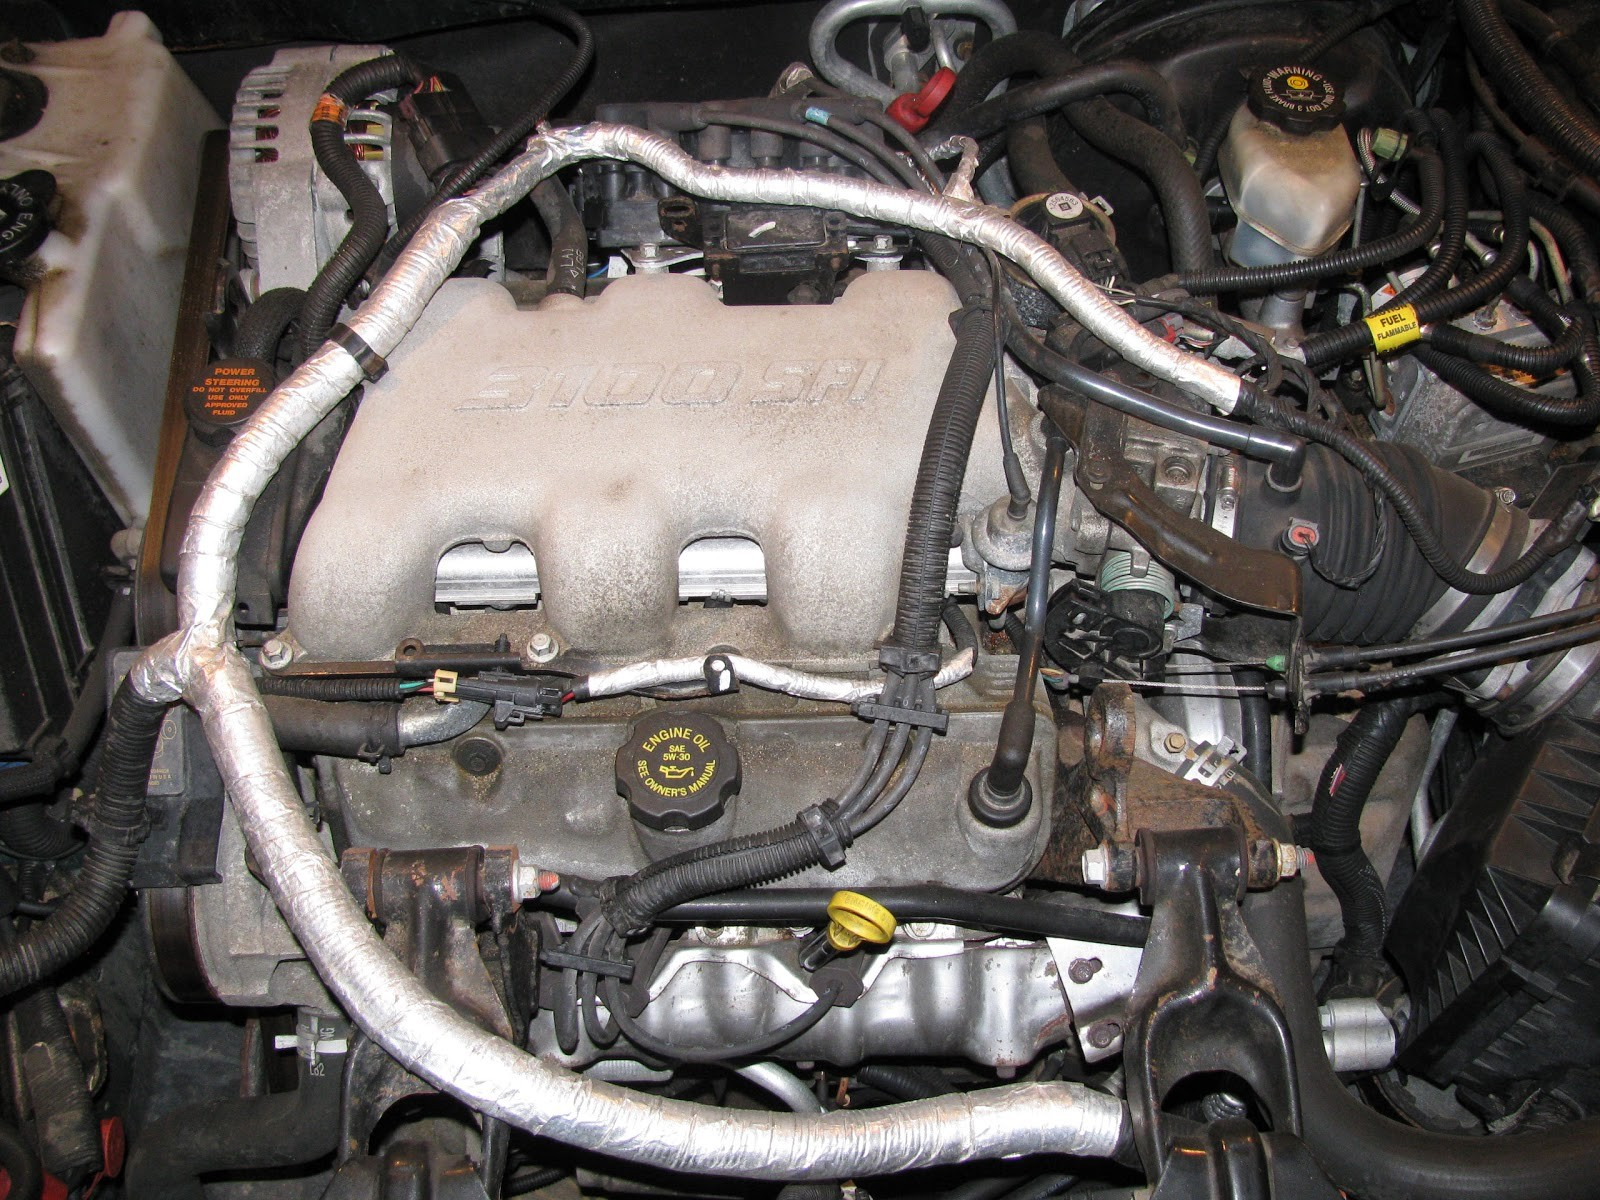 1997 Pontiac Grand Am Engine Diagram the original Mechanic 3 1l Engine Gm Replacing Intake Manifold Of 1997 Pontiac Grand Am Engine Diagram